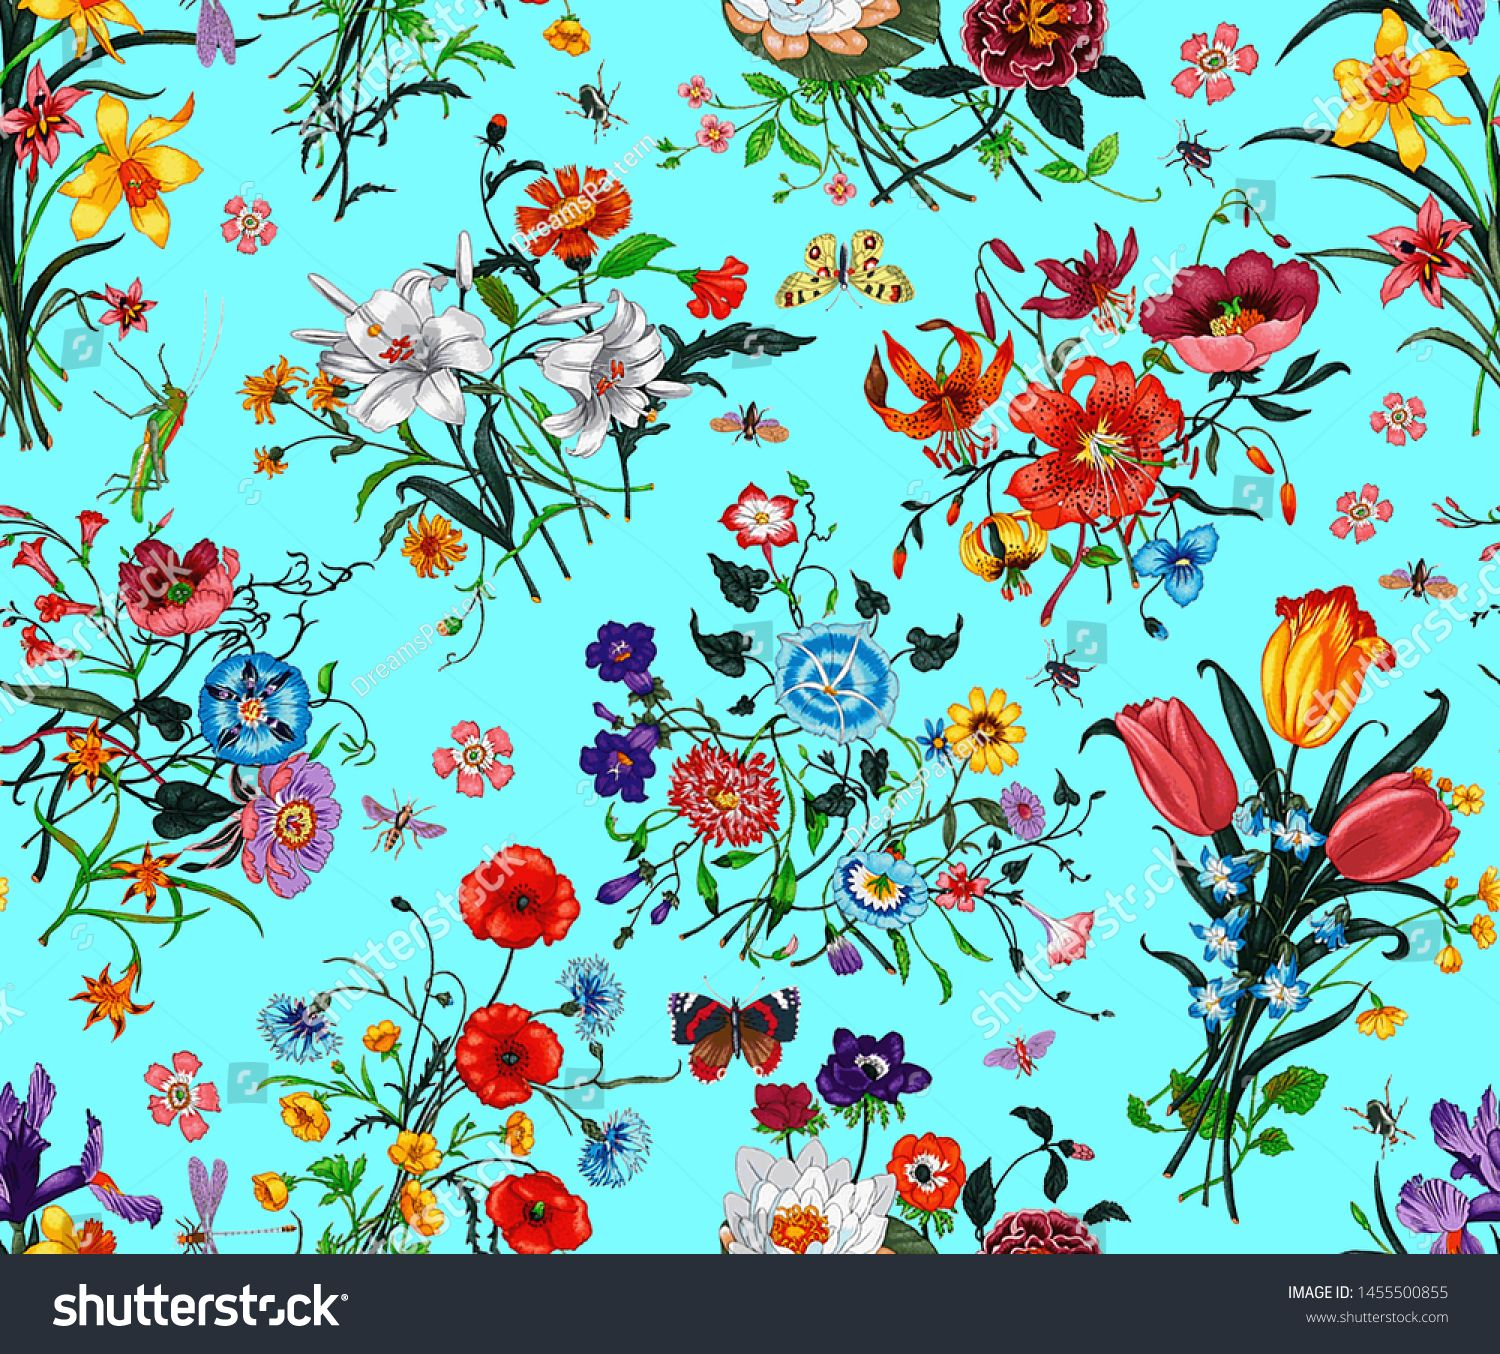 Seamless Floral Pattern With Bright Colorful Flowers With Leaves